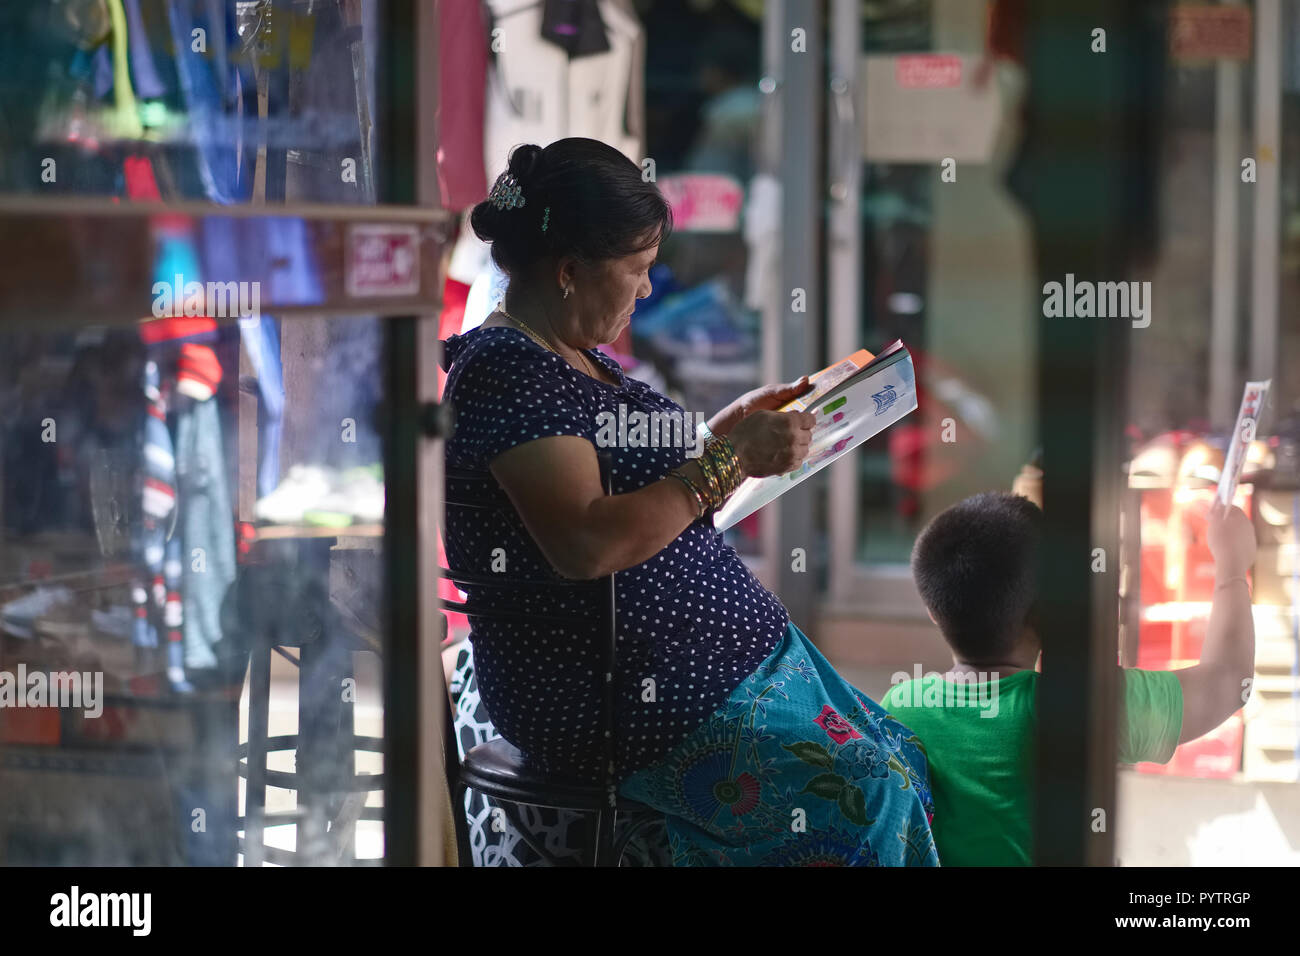 An ethnic Nepalese migrant worker from Myanmar (Burma) in Bangkok, Thailand, perusing a magazine - Stock Image